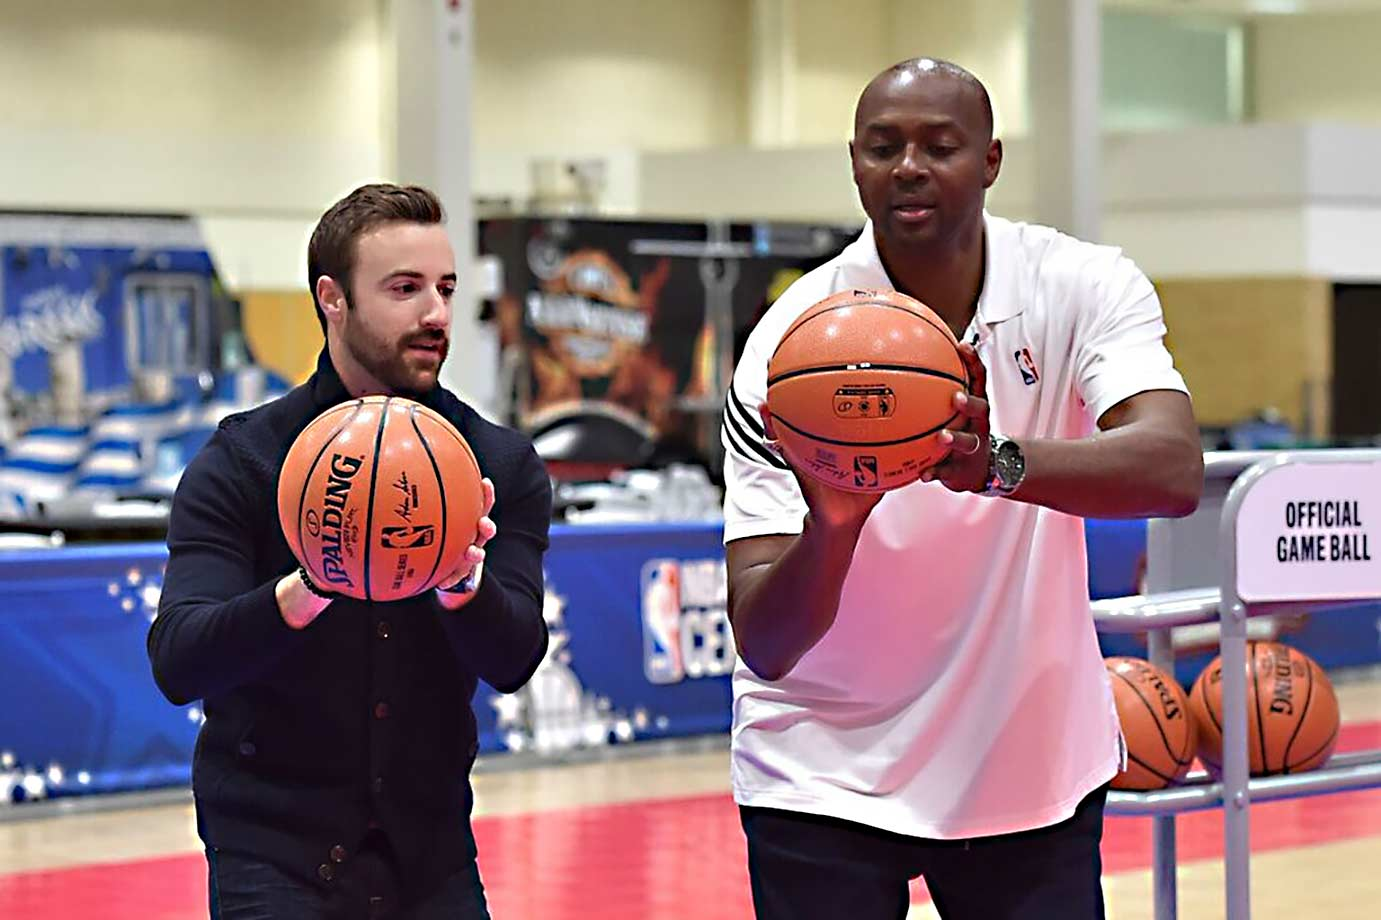 Getting shooting tips from Horace Grant. You can tell by looking at my ball I'm not doing very well.